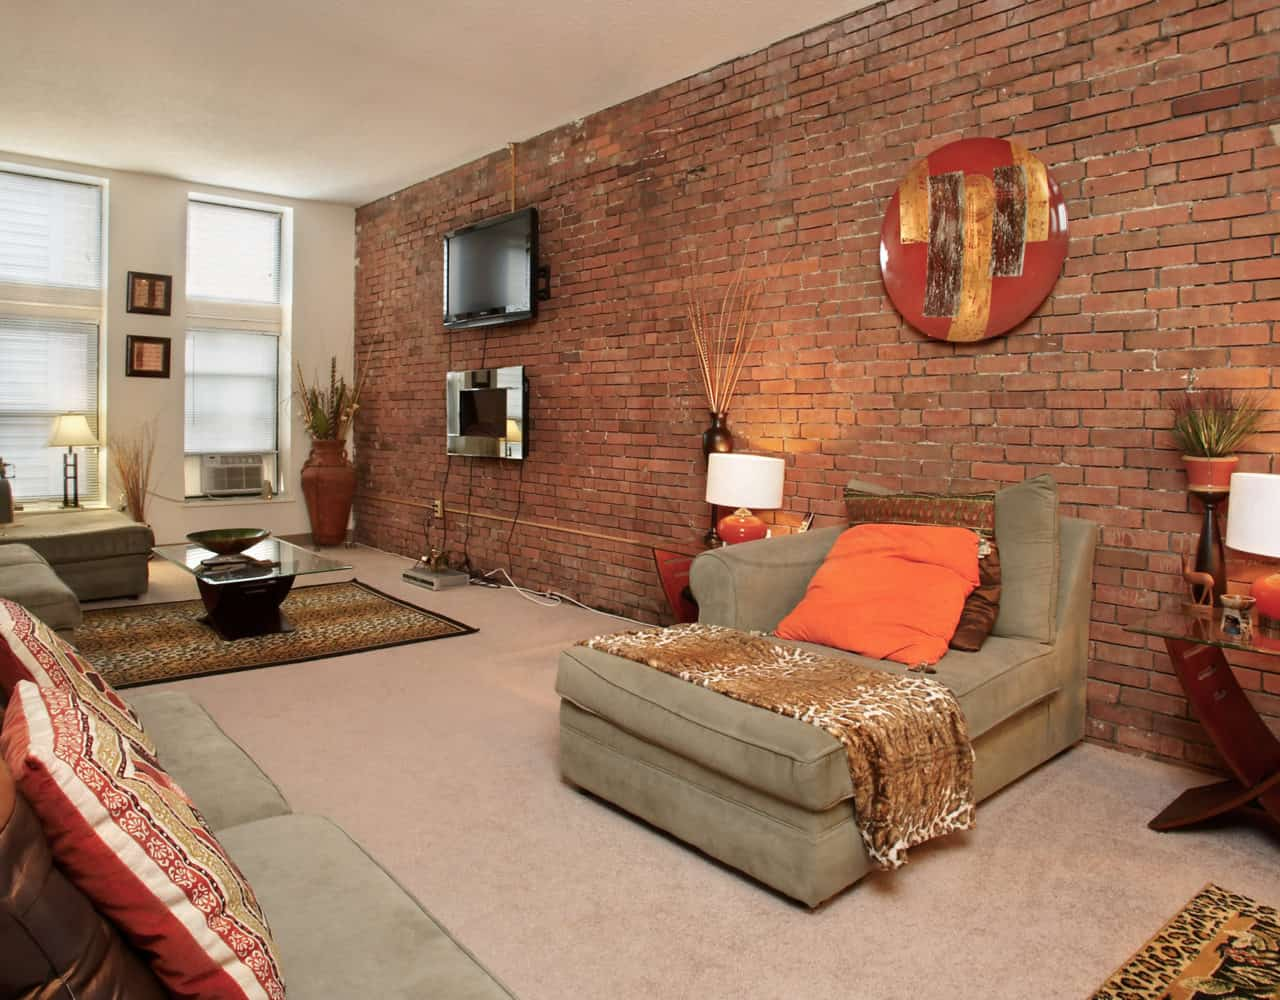 Full wall of exposed brick from the original Yale Brewery creates a beautiful accent to this apartment's charm